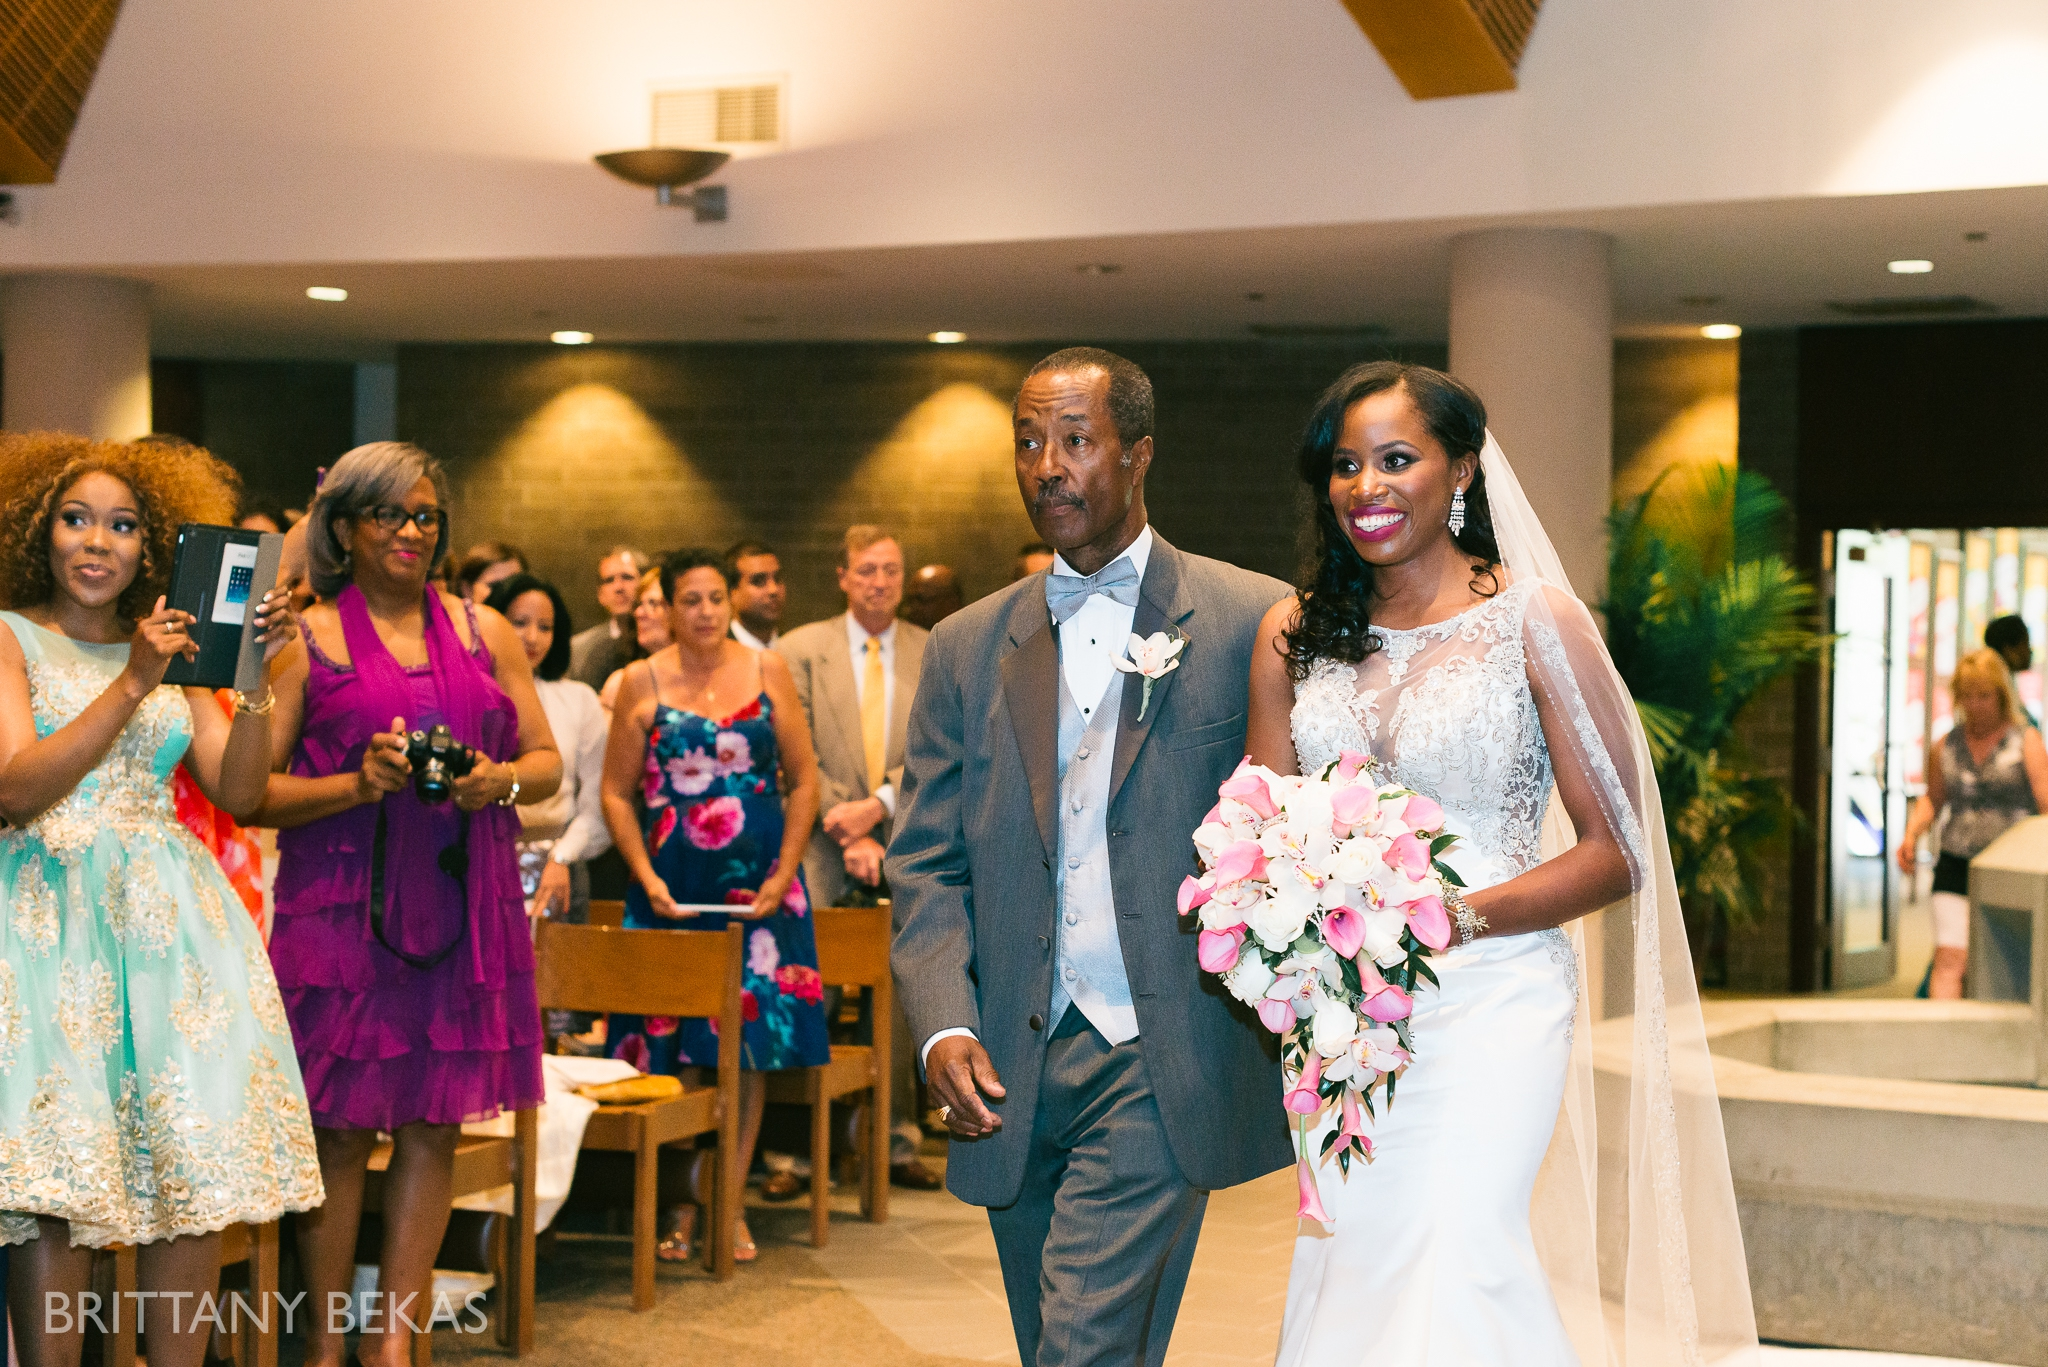 Patrick Haley Mansion Wedding - Brittany Bekas Photography_0008